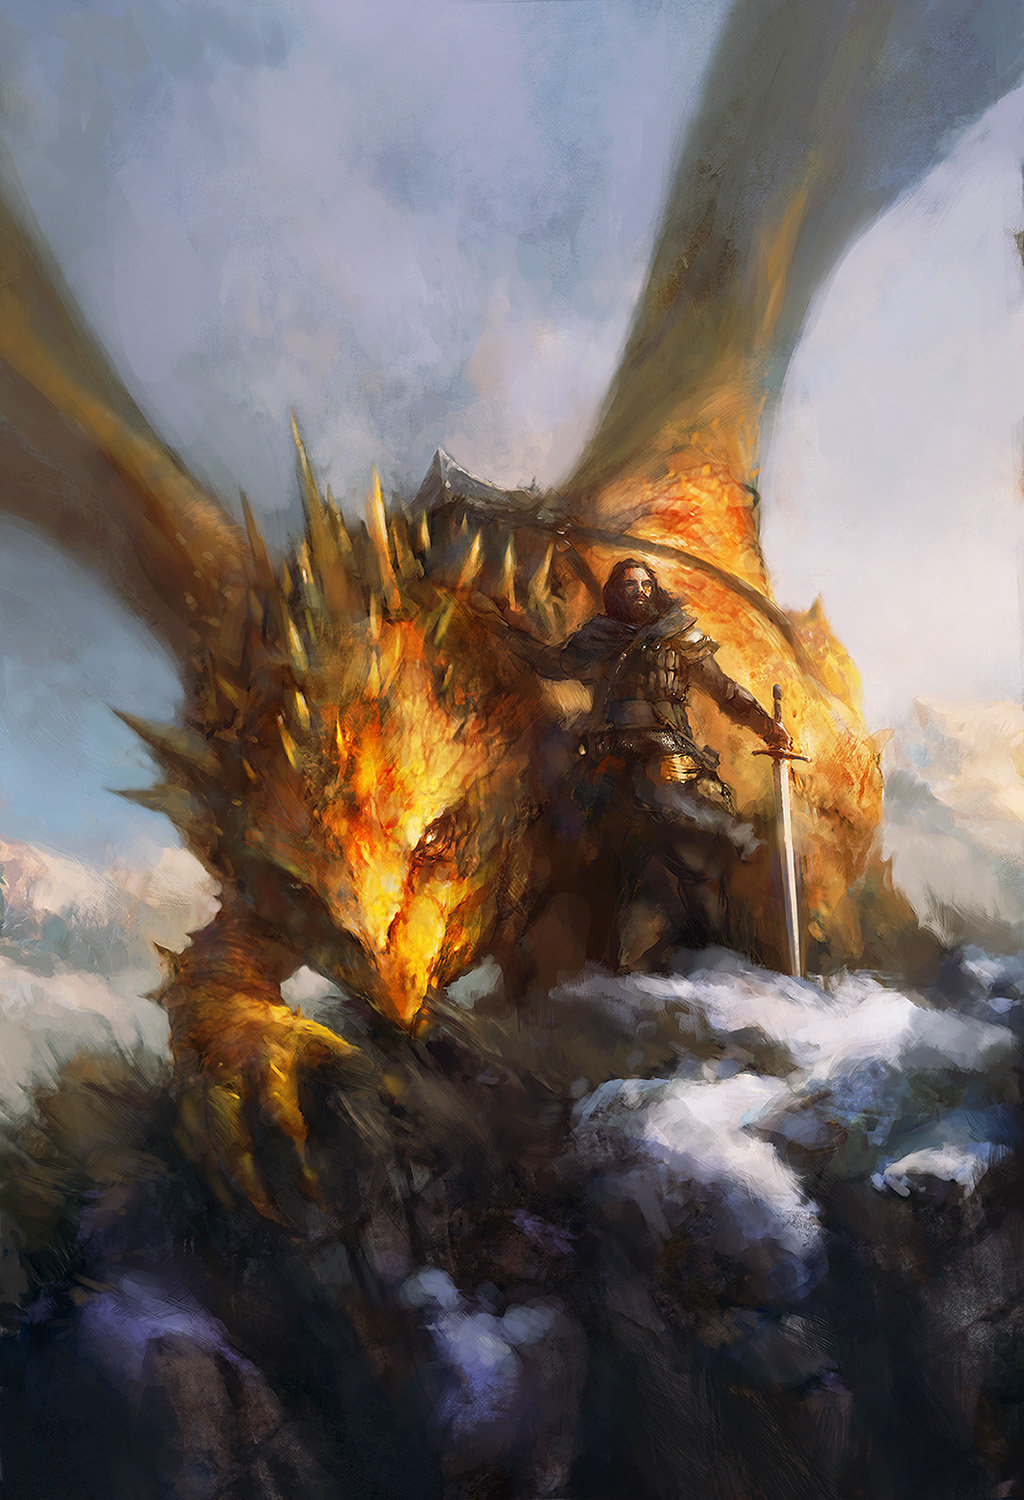 Artstation - Dragon Rider 02 Ev Shipard